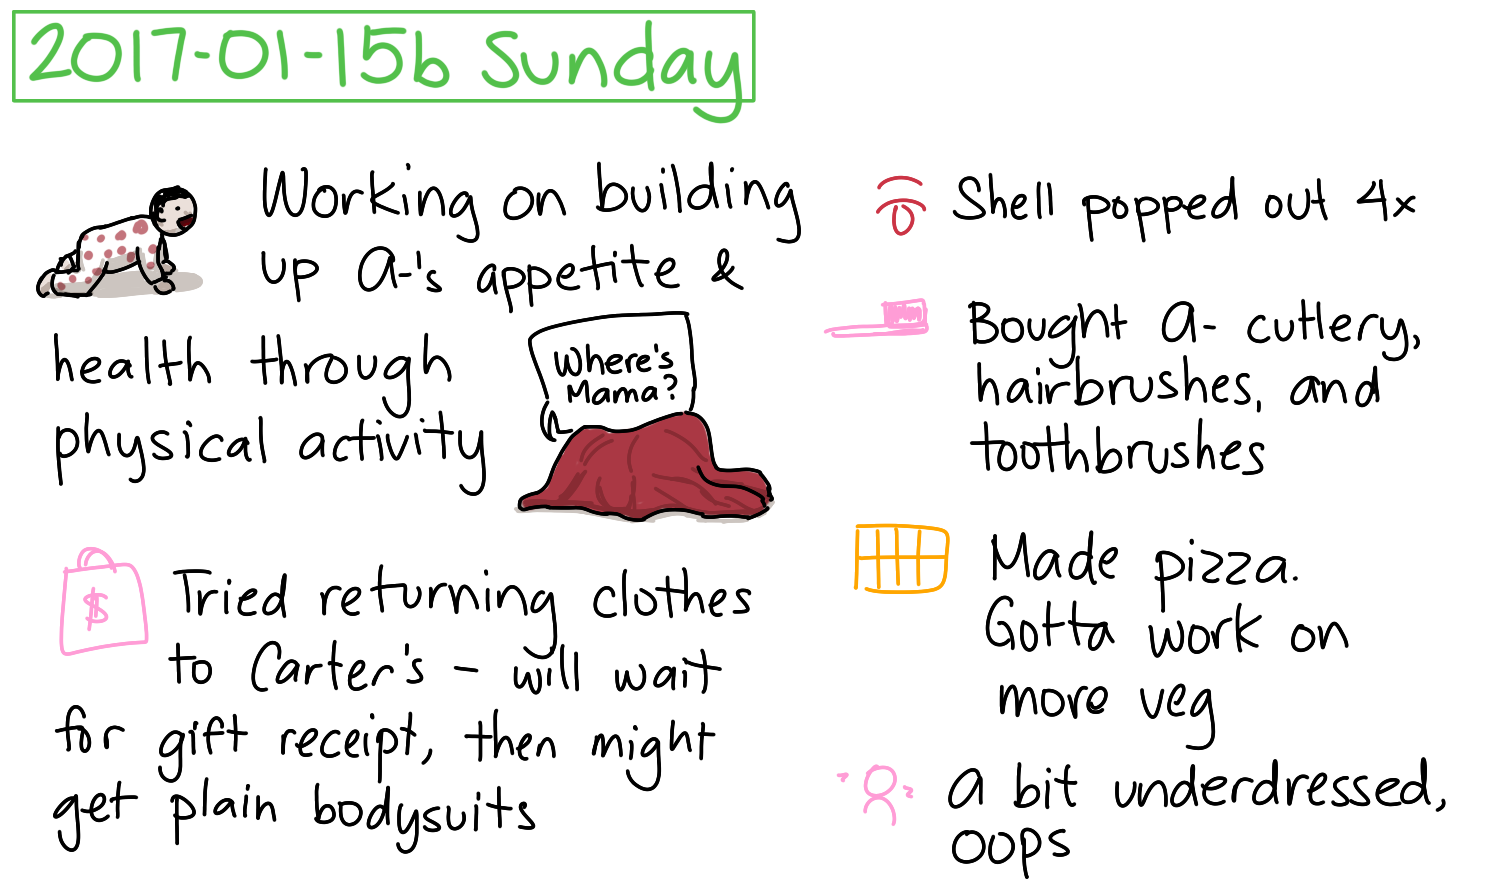 2017-01-15b Sunday #daily #journal.png